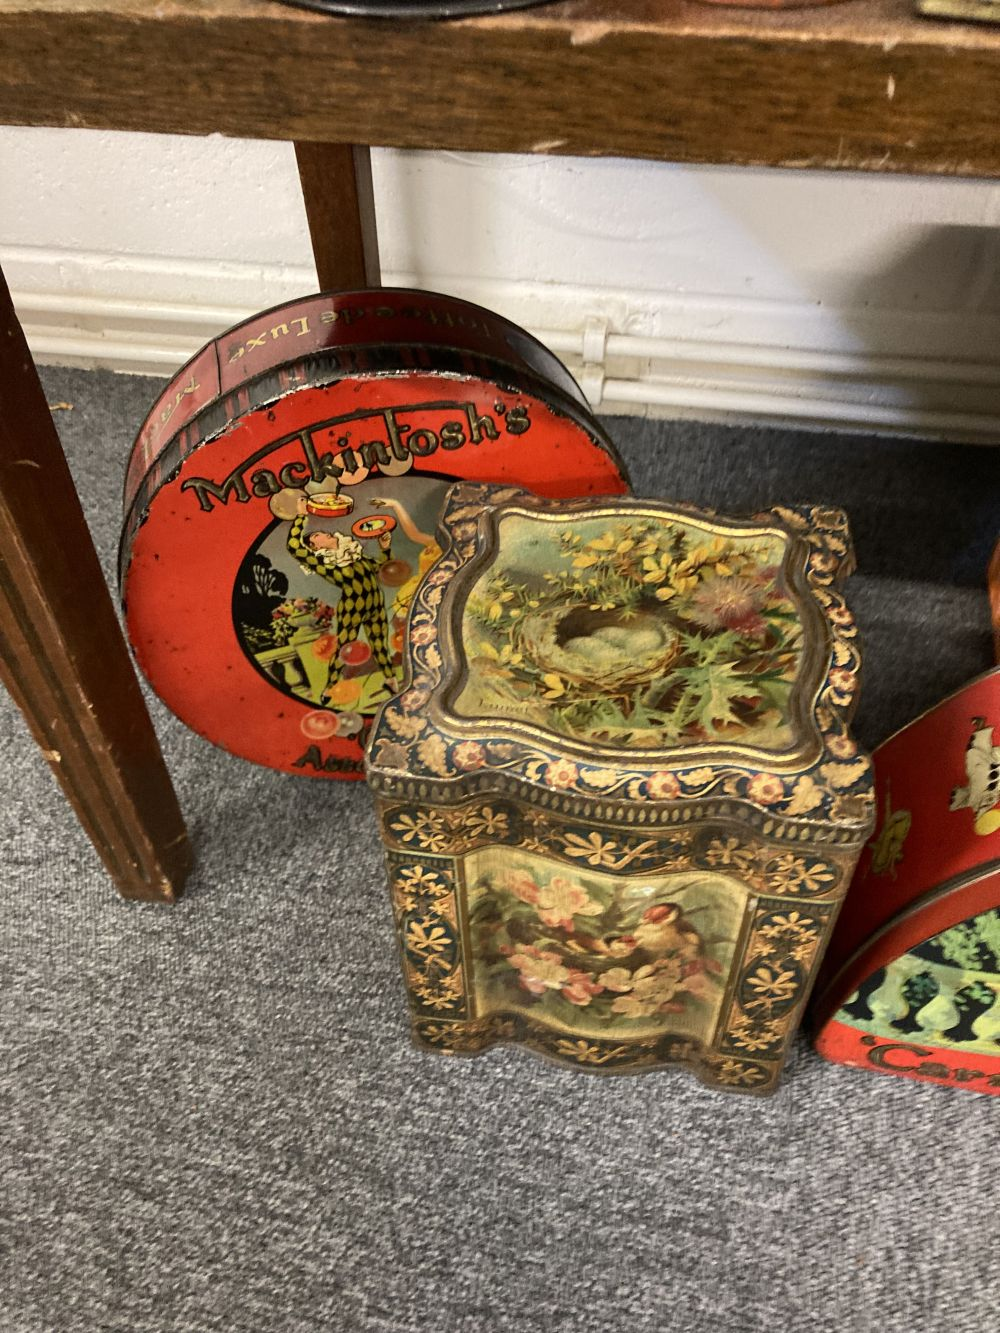 * Advertising Tins. A large collection of tins - Image 10 of 17